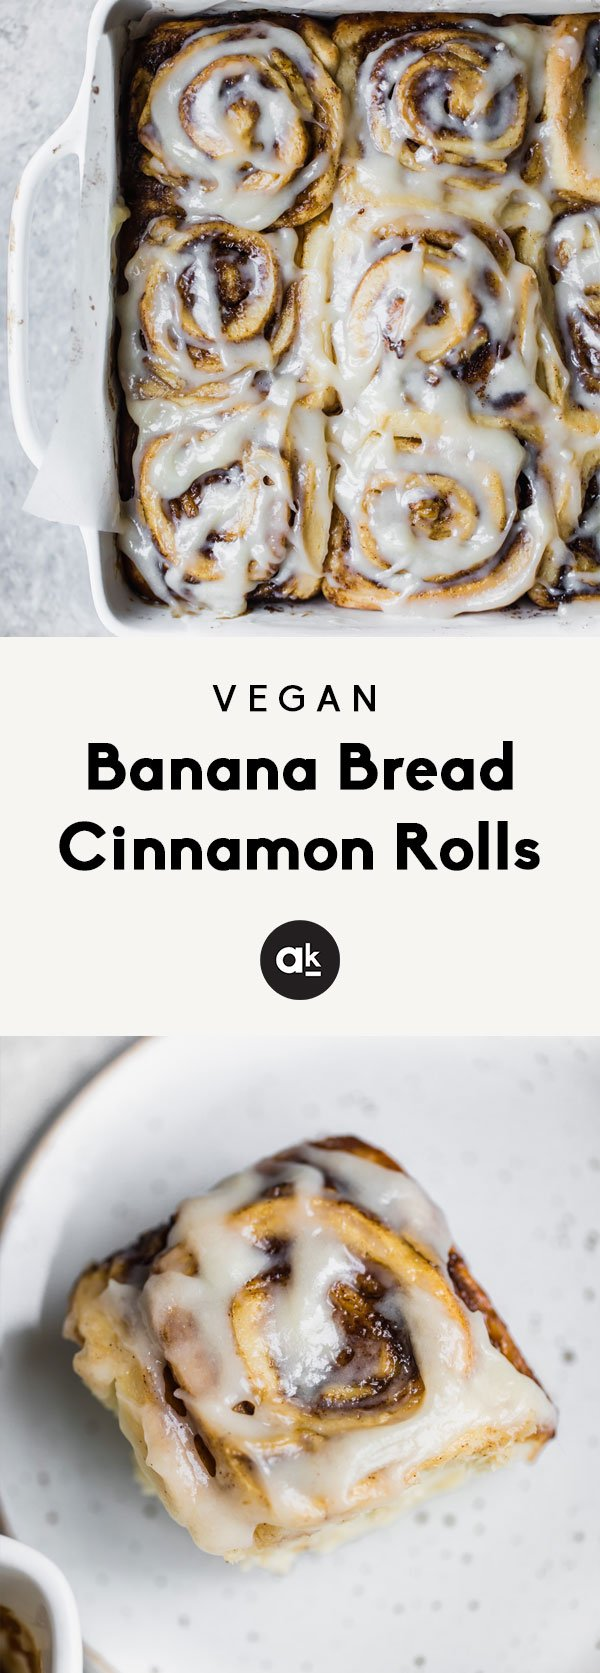 Meet the world's best vegan cinnamon rolls: vegan banana bread cinnamon rolls! A cross between a cinnamon roll and banana bread, these fluffy, soft cinnamon rolls are homemade and make a delicious brunch or treat! This recipe is in partnership with Almond Breeze.